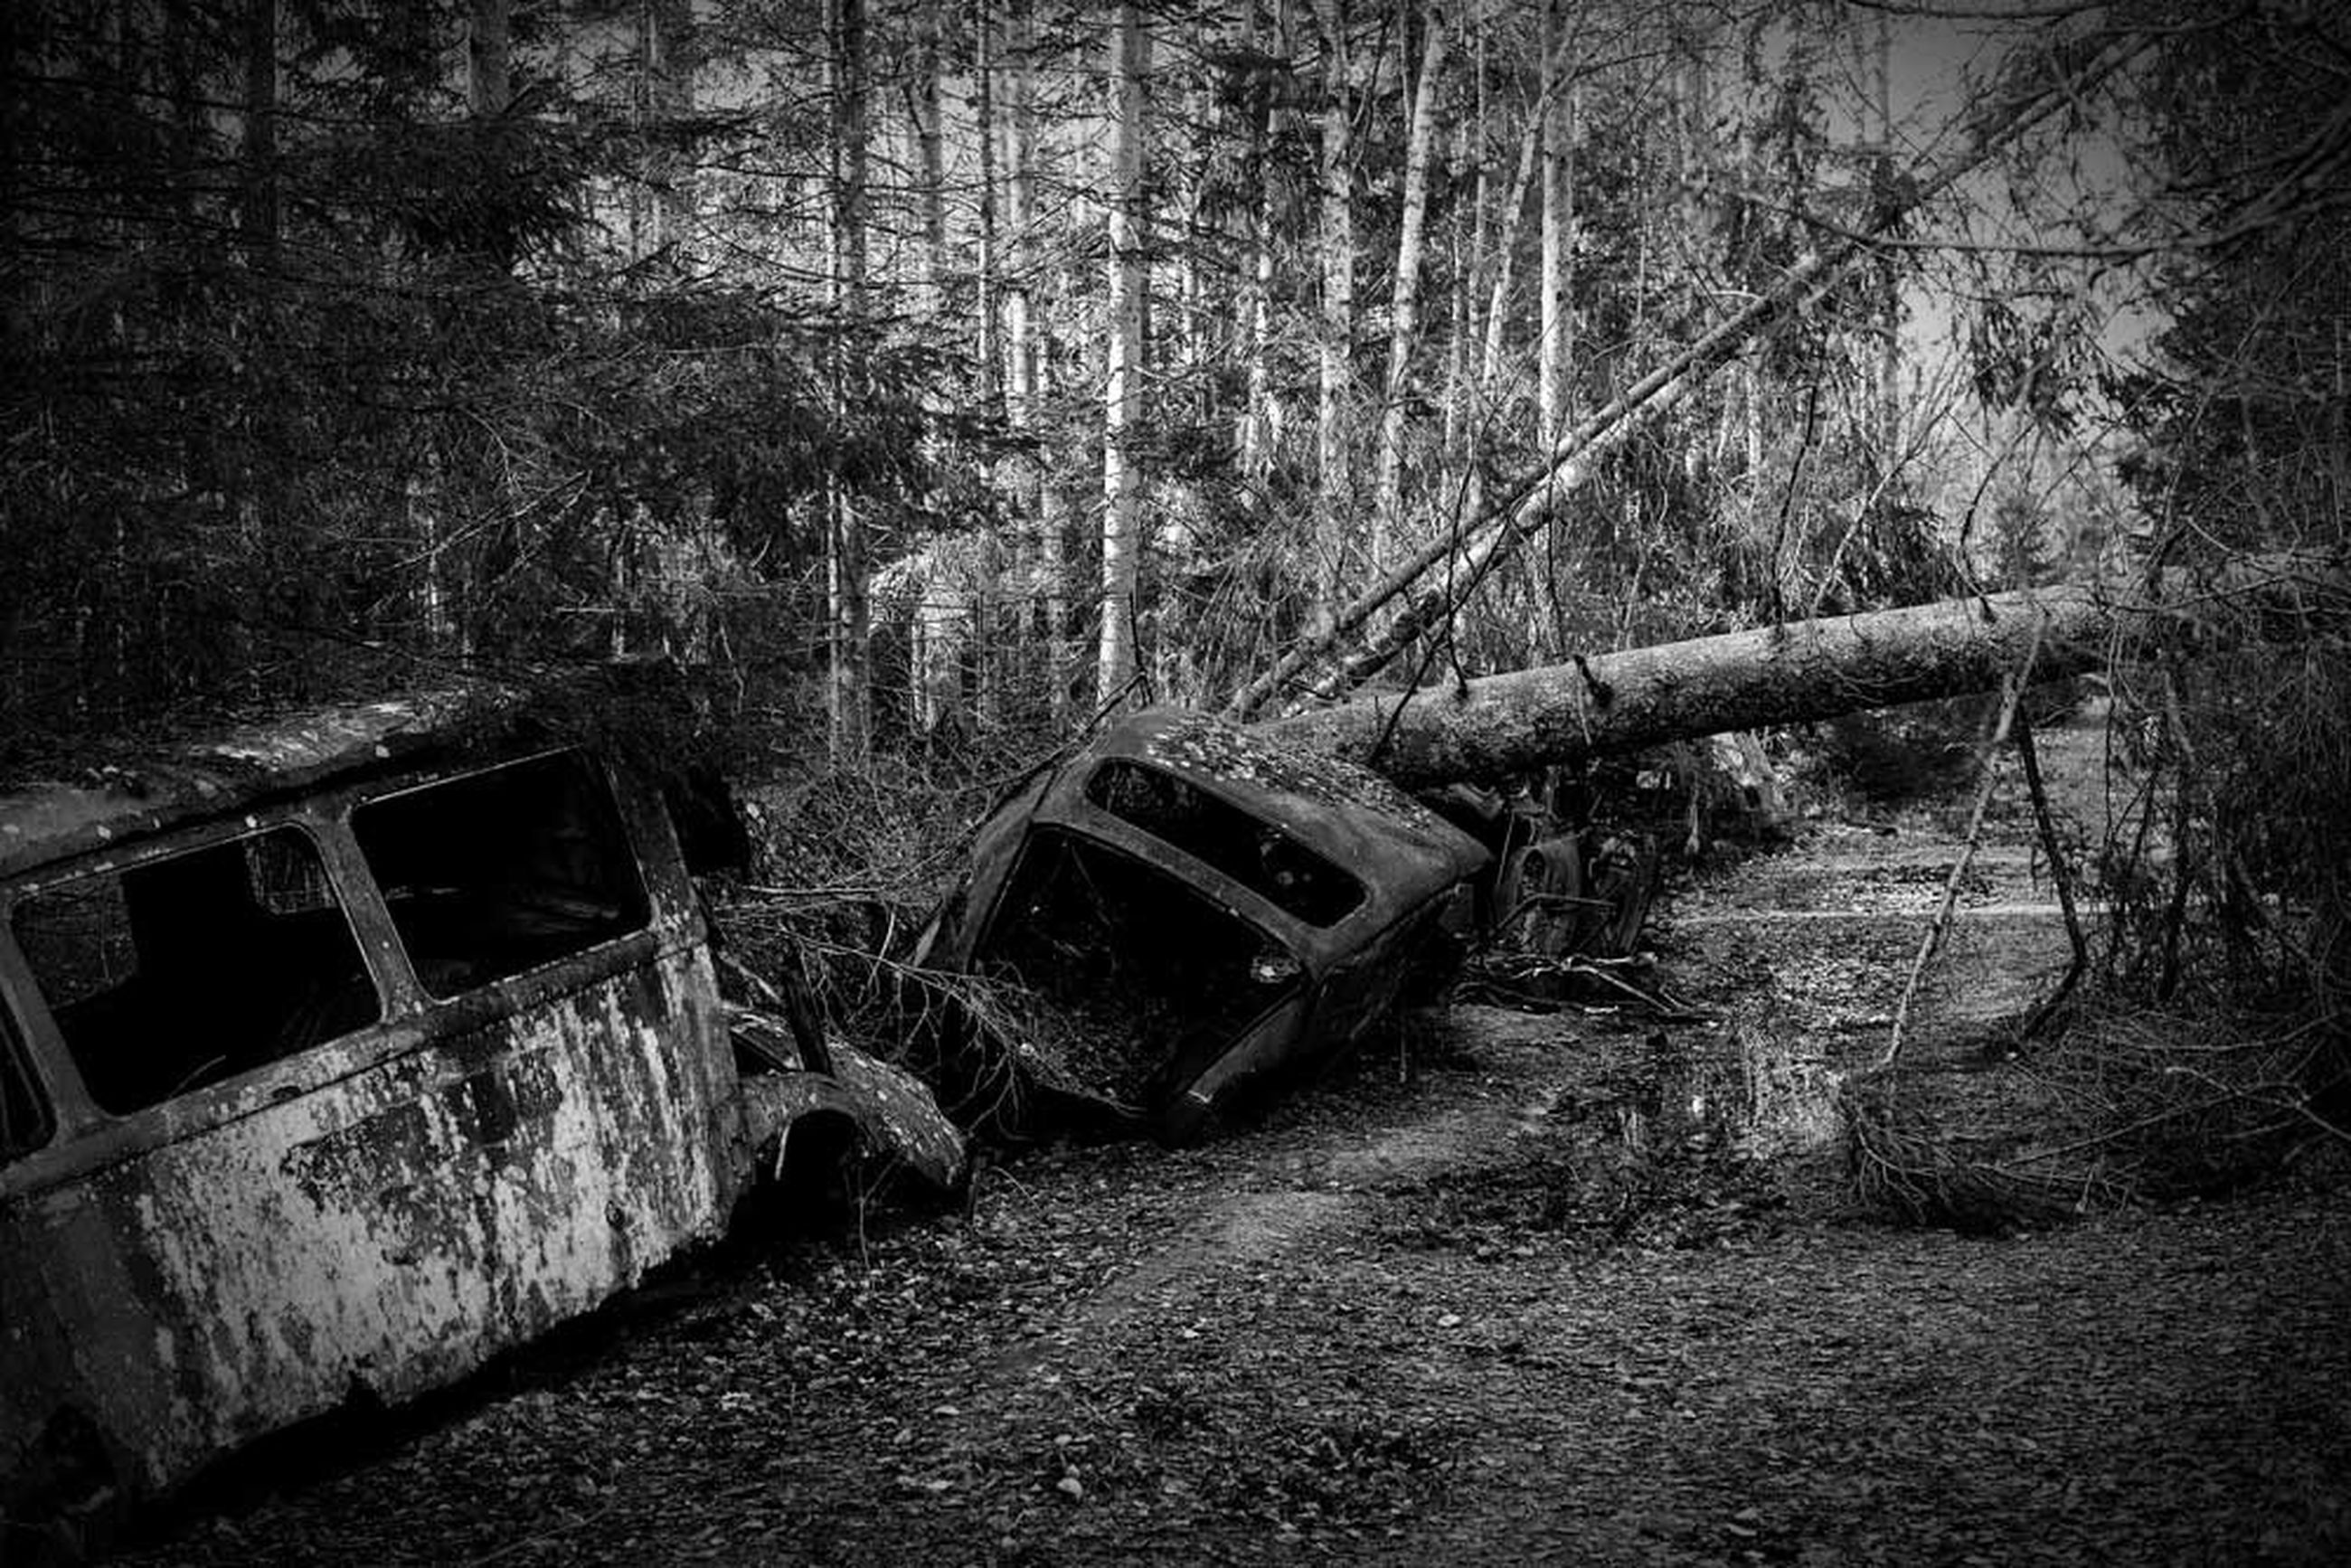 tree, abandoned, damaged, obsolete, transportation, old, run-down, forest, deterioration, built structure, mode of transport, nature, outdoors, no people, day, architecture, destruction, broken, bare tree, branch